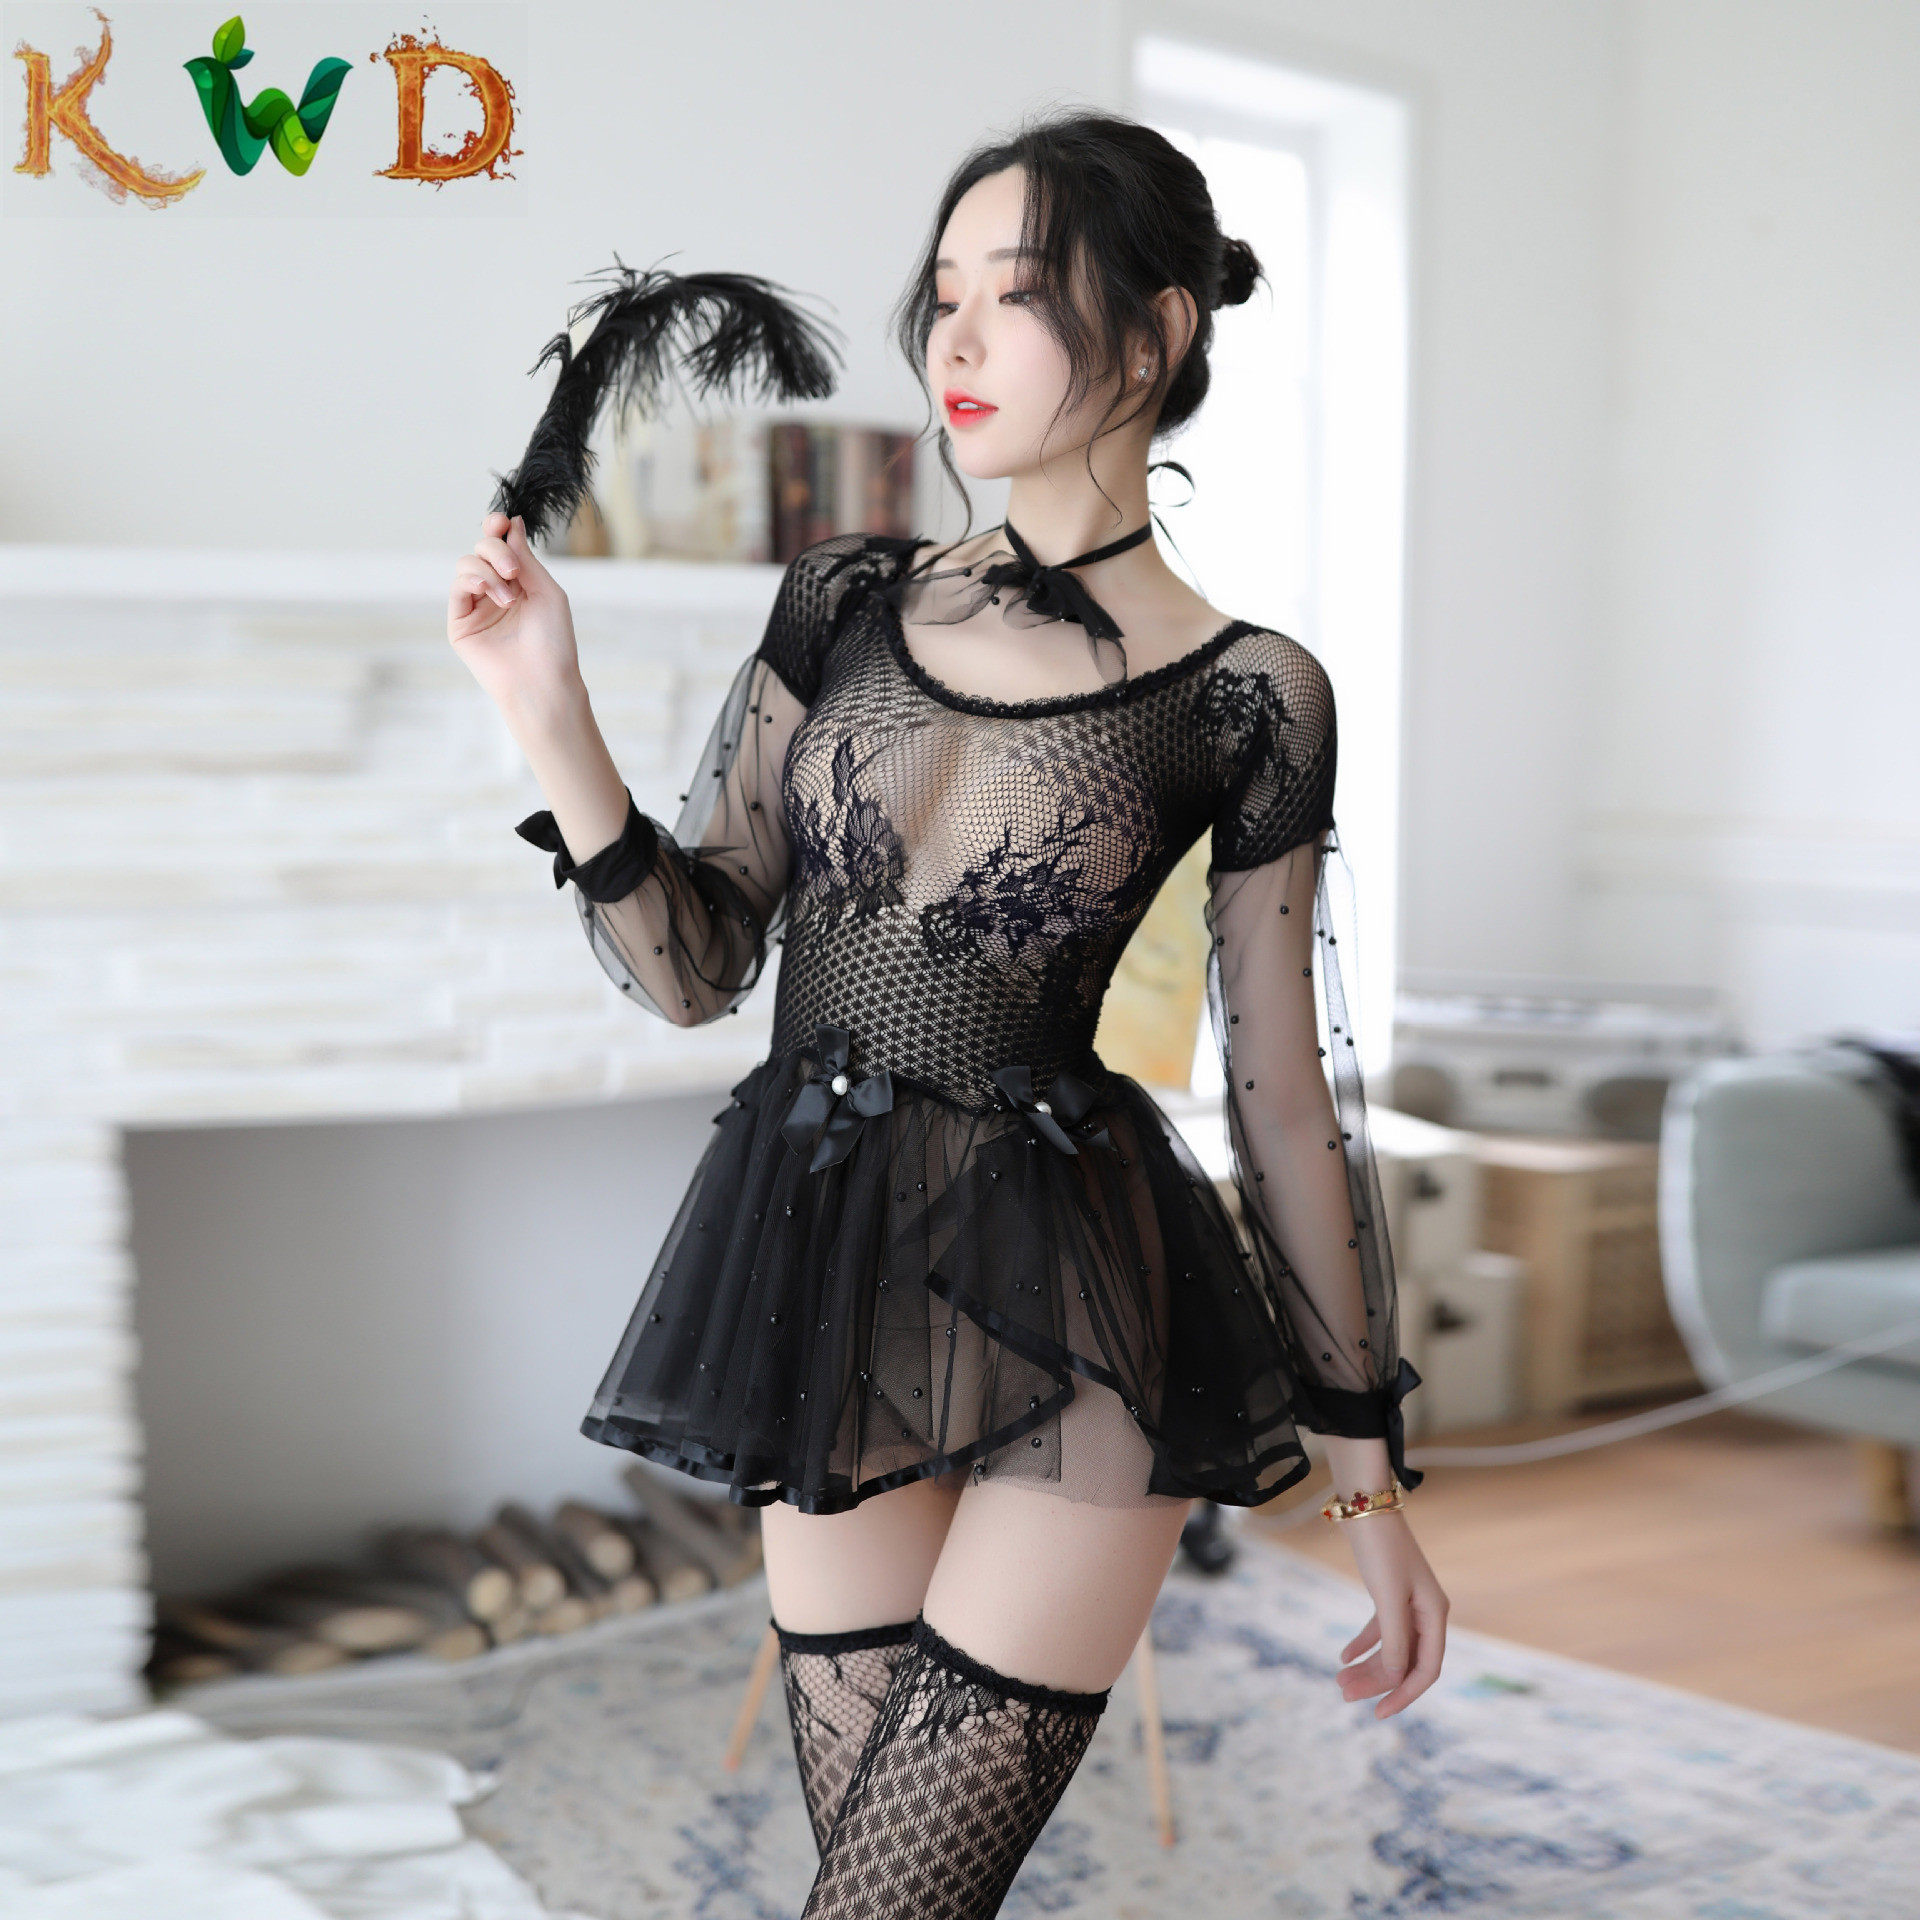 KWD Uniform Sexy Underwear Lenceria Womens Sexy Lingerie Baby Doll Dress Backless Lace Set Erotic Lingerie Maid Erotic Cosplay